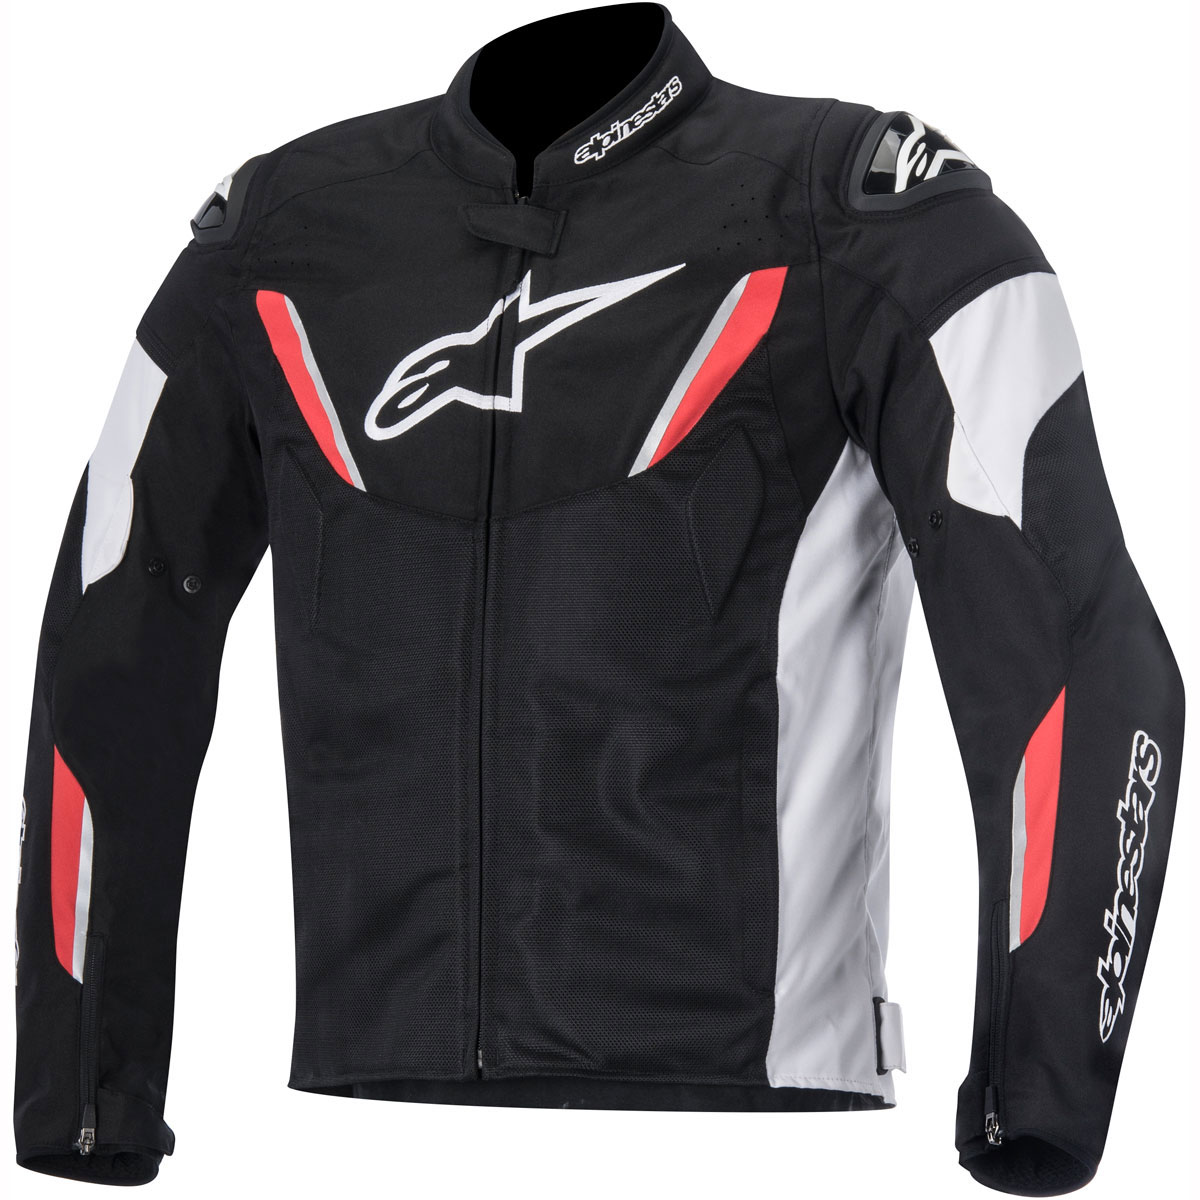 Alpinestars Air Jackets: Protective & light for summer riding